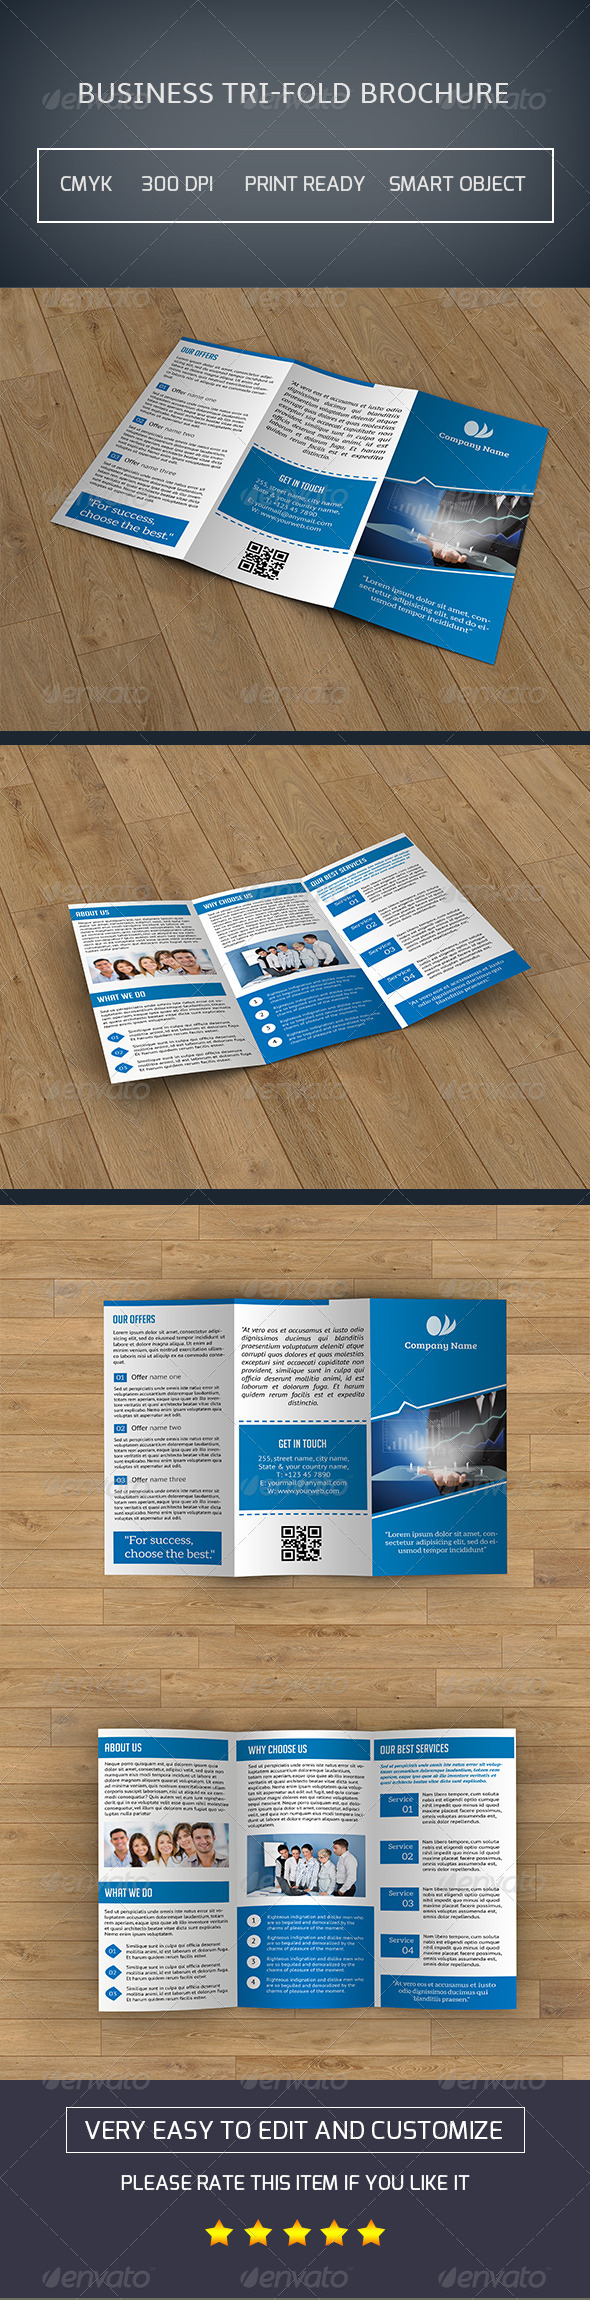 GraphicRiver Business Trifold Brochure-V25 8141227